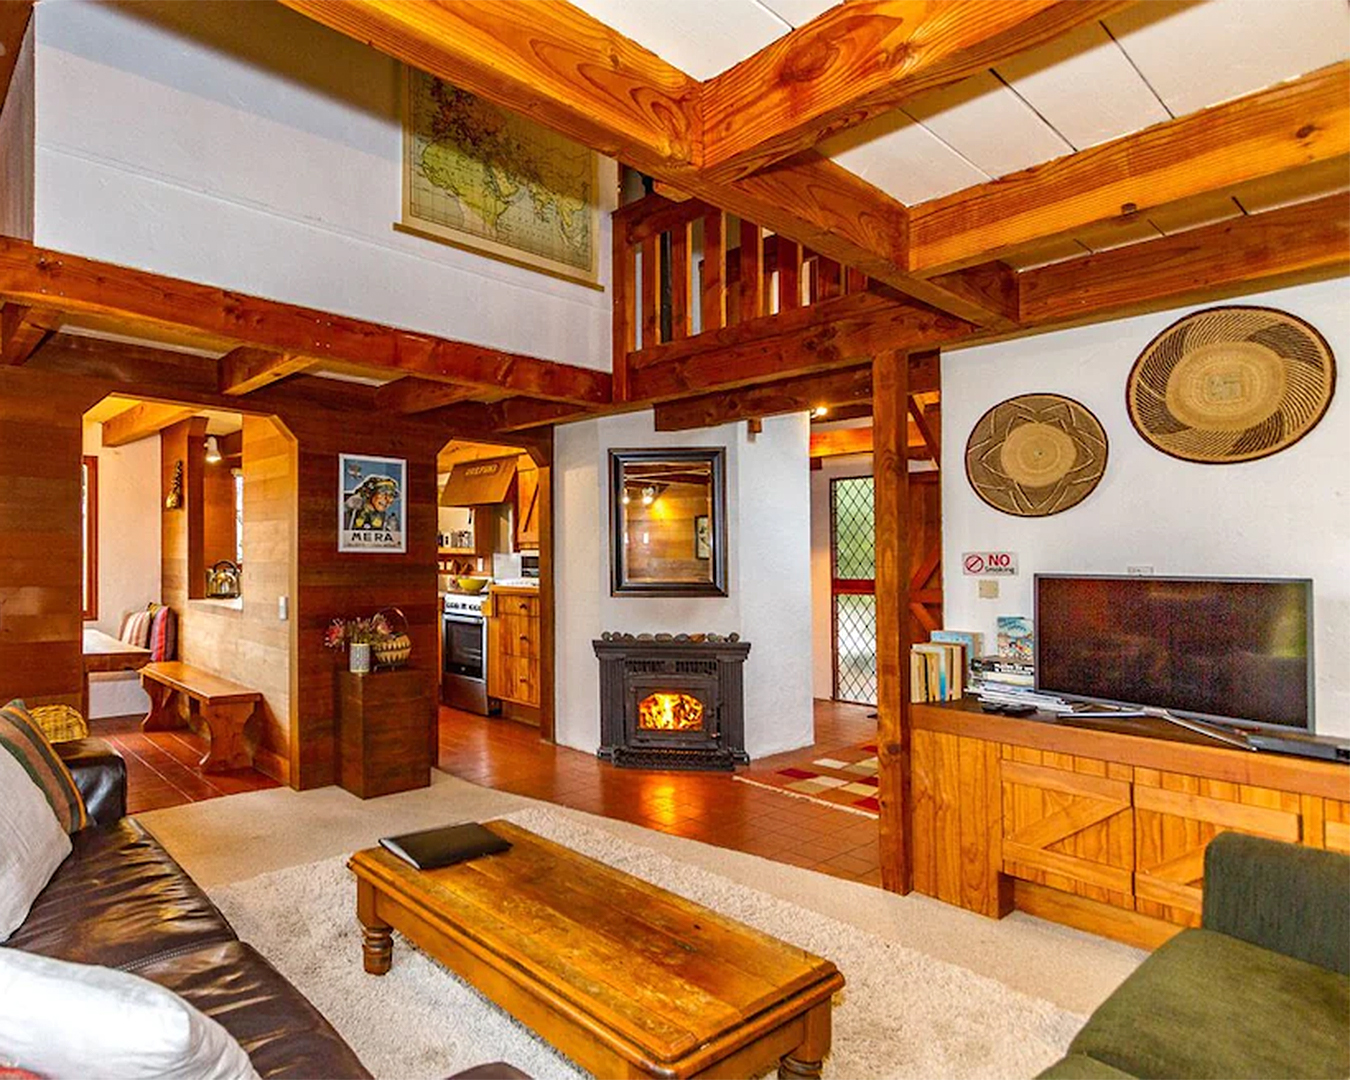 The interior of the Swiss Chalet shows a roaring log fire and warm wooden accents.